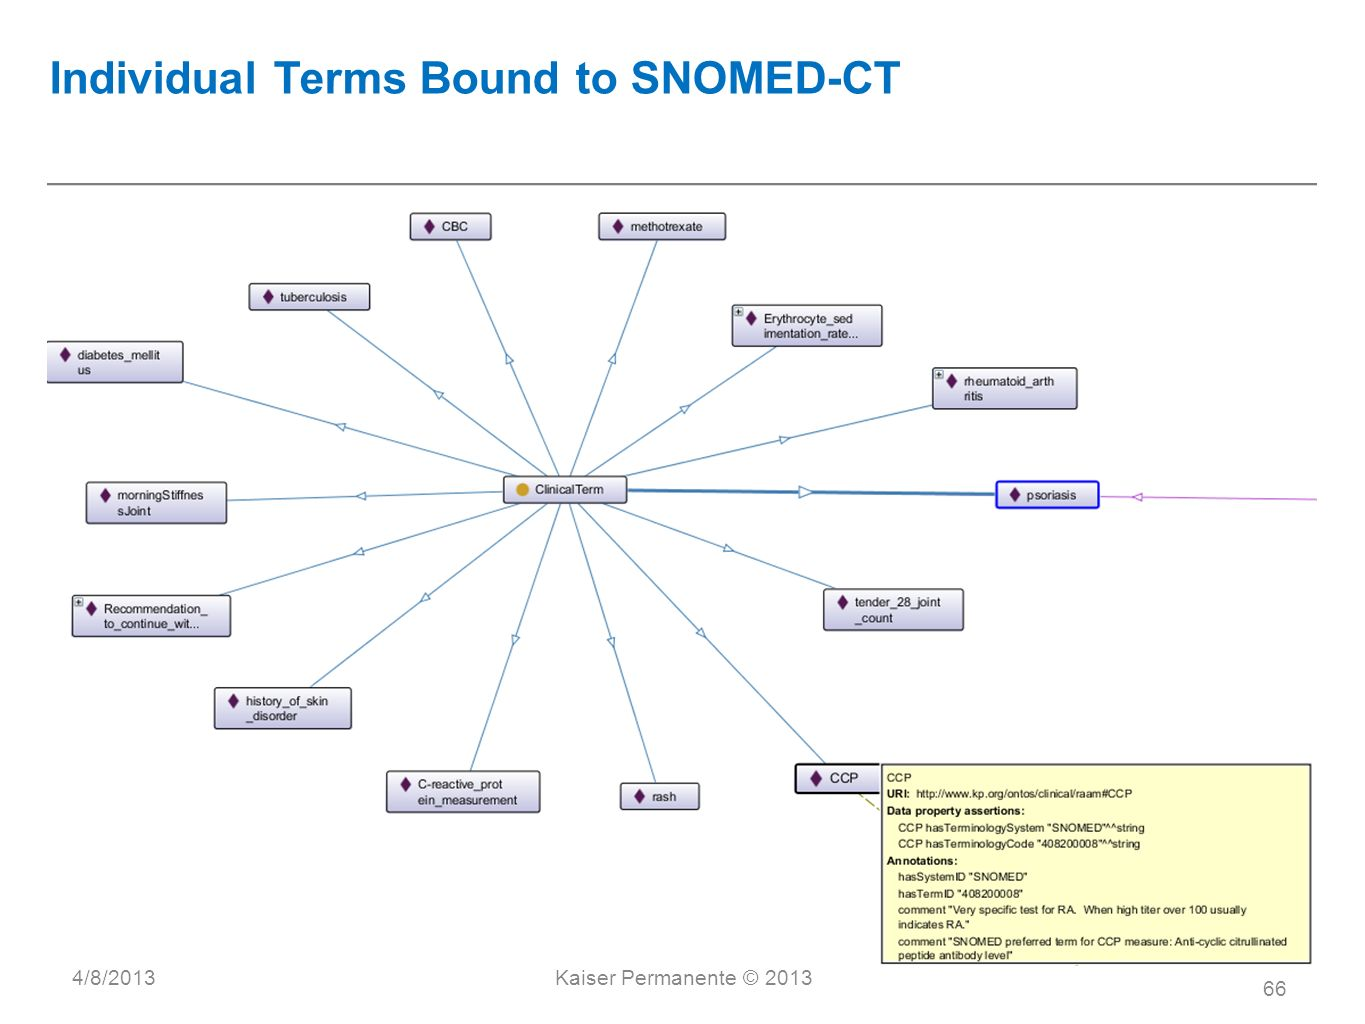 Individual Terms Bound to SNOMED-CT